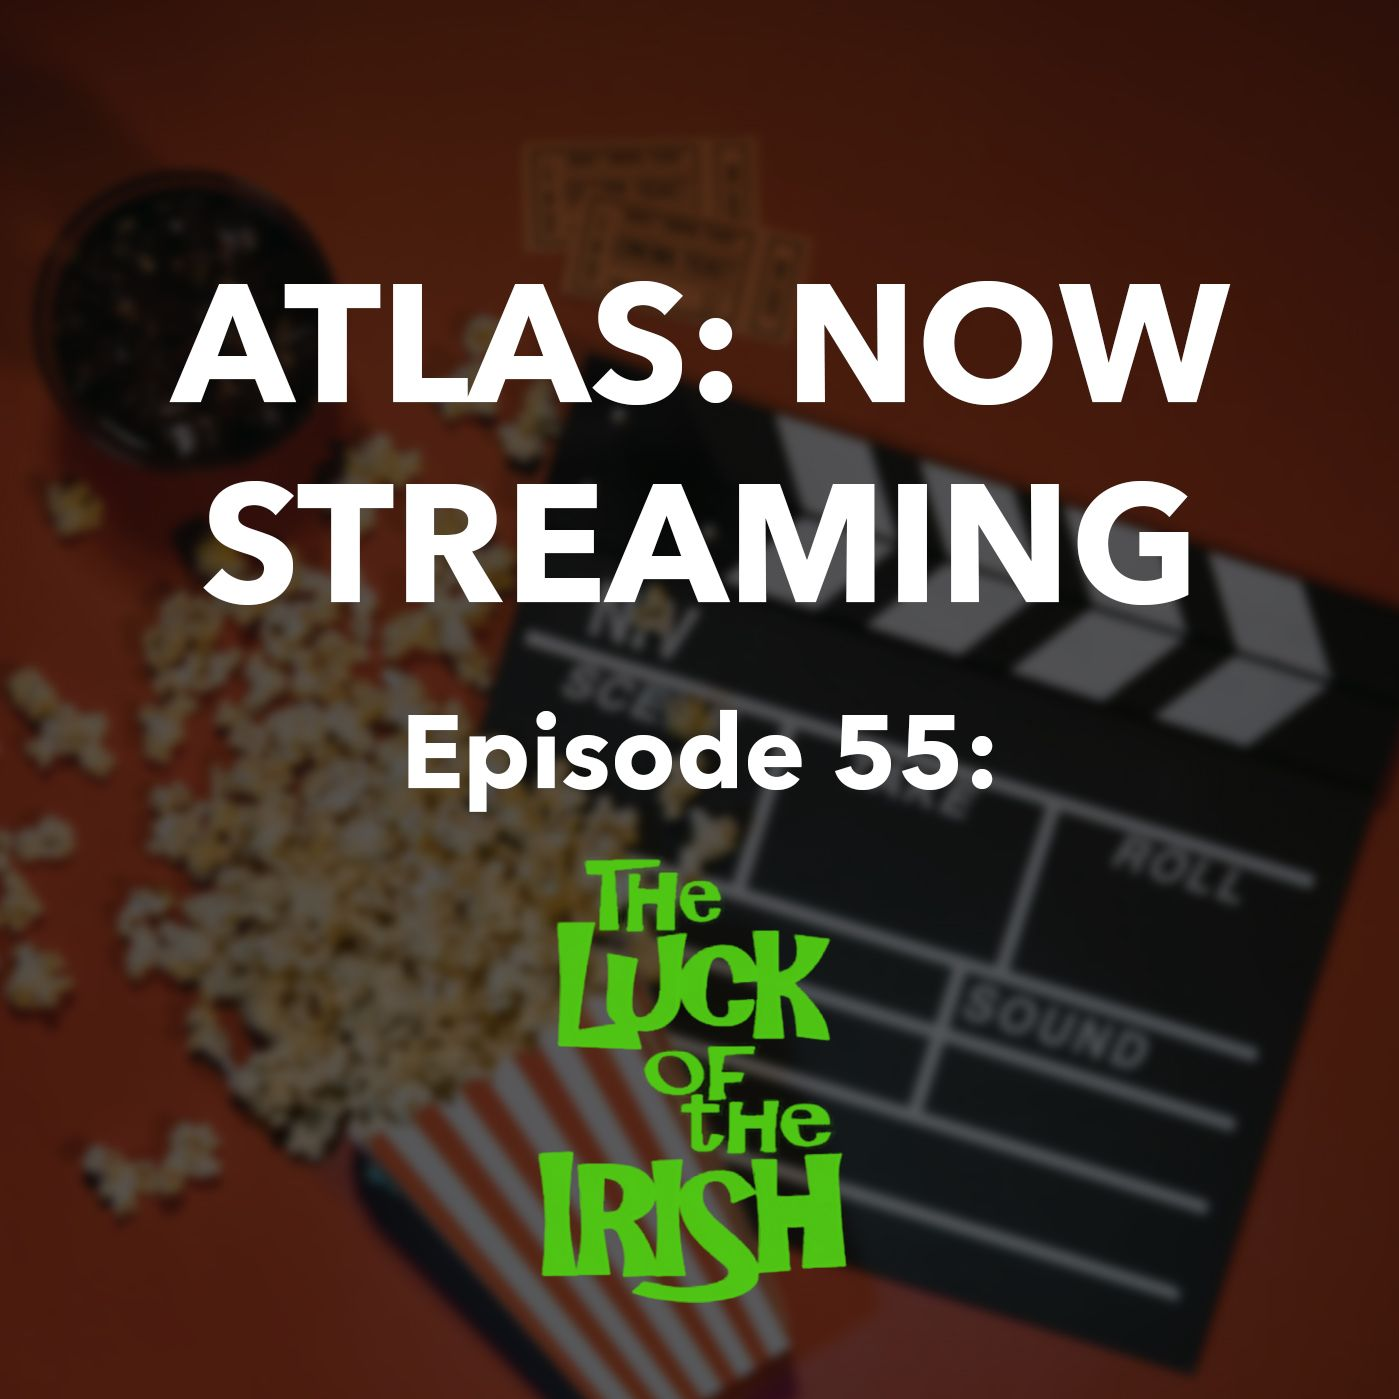 The Luck of the Irish - Atlas Now Streaming 55